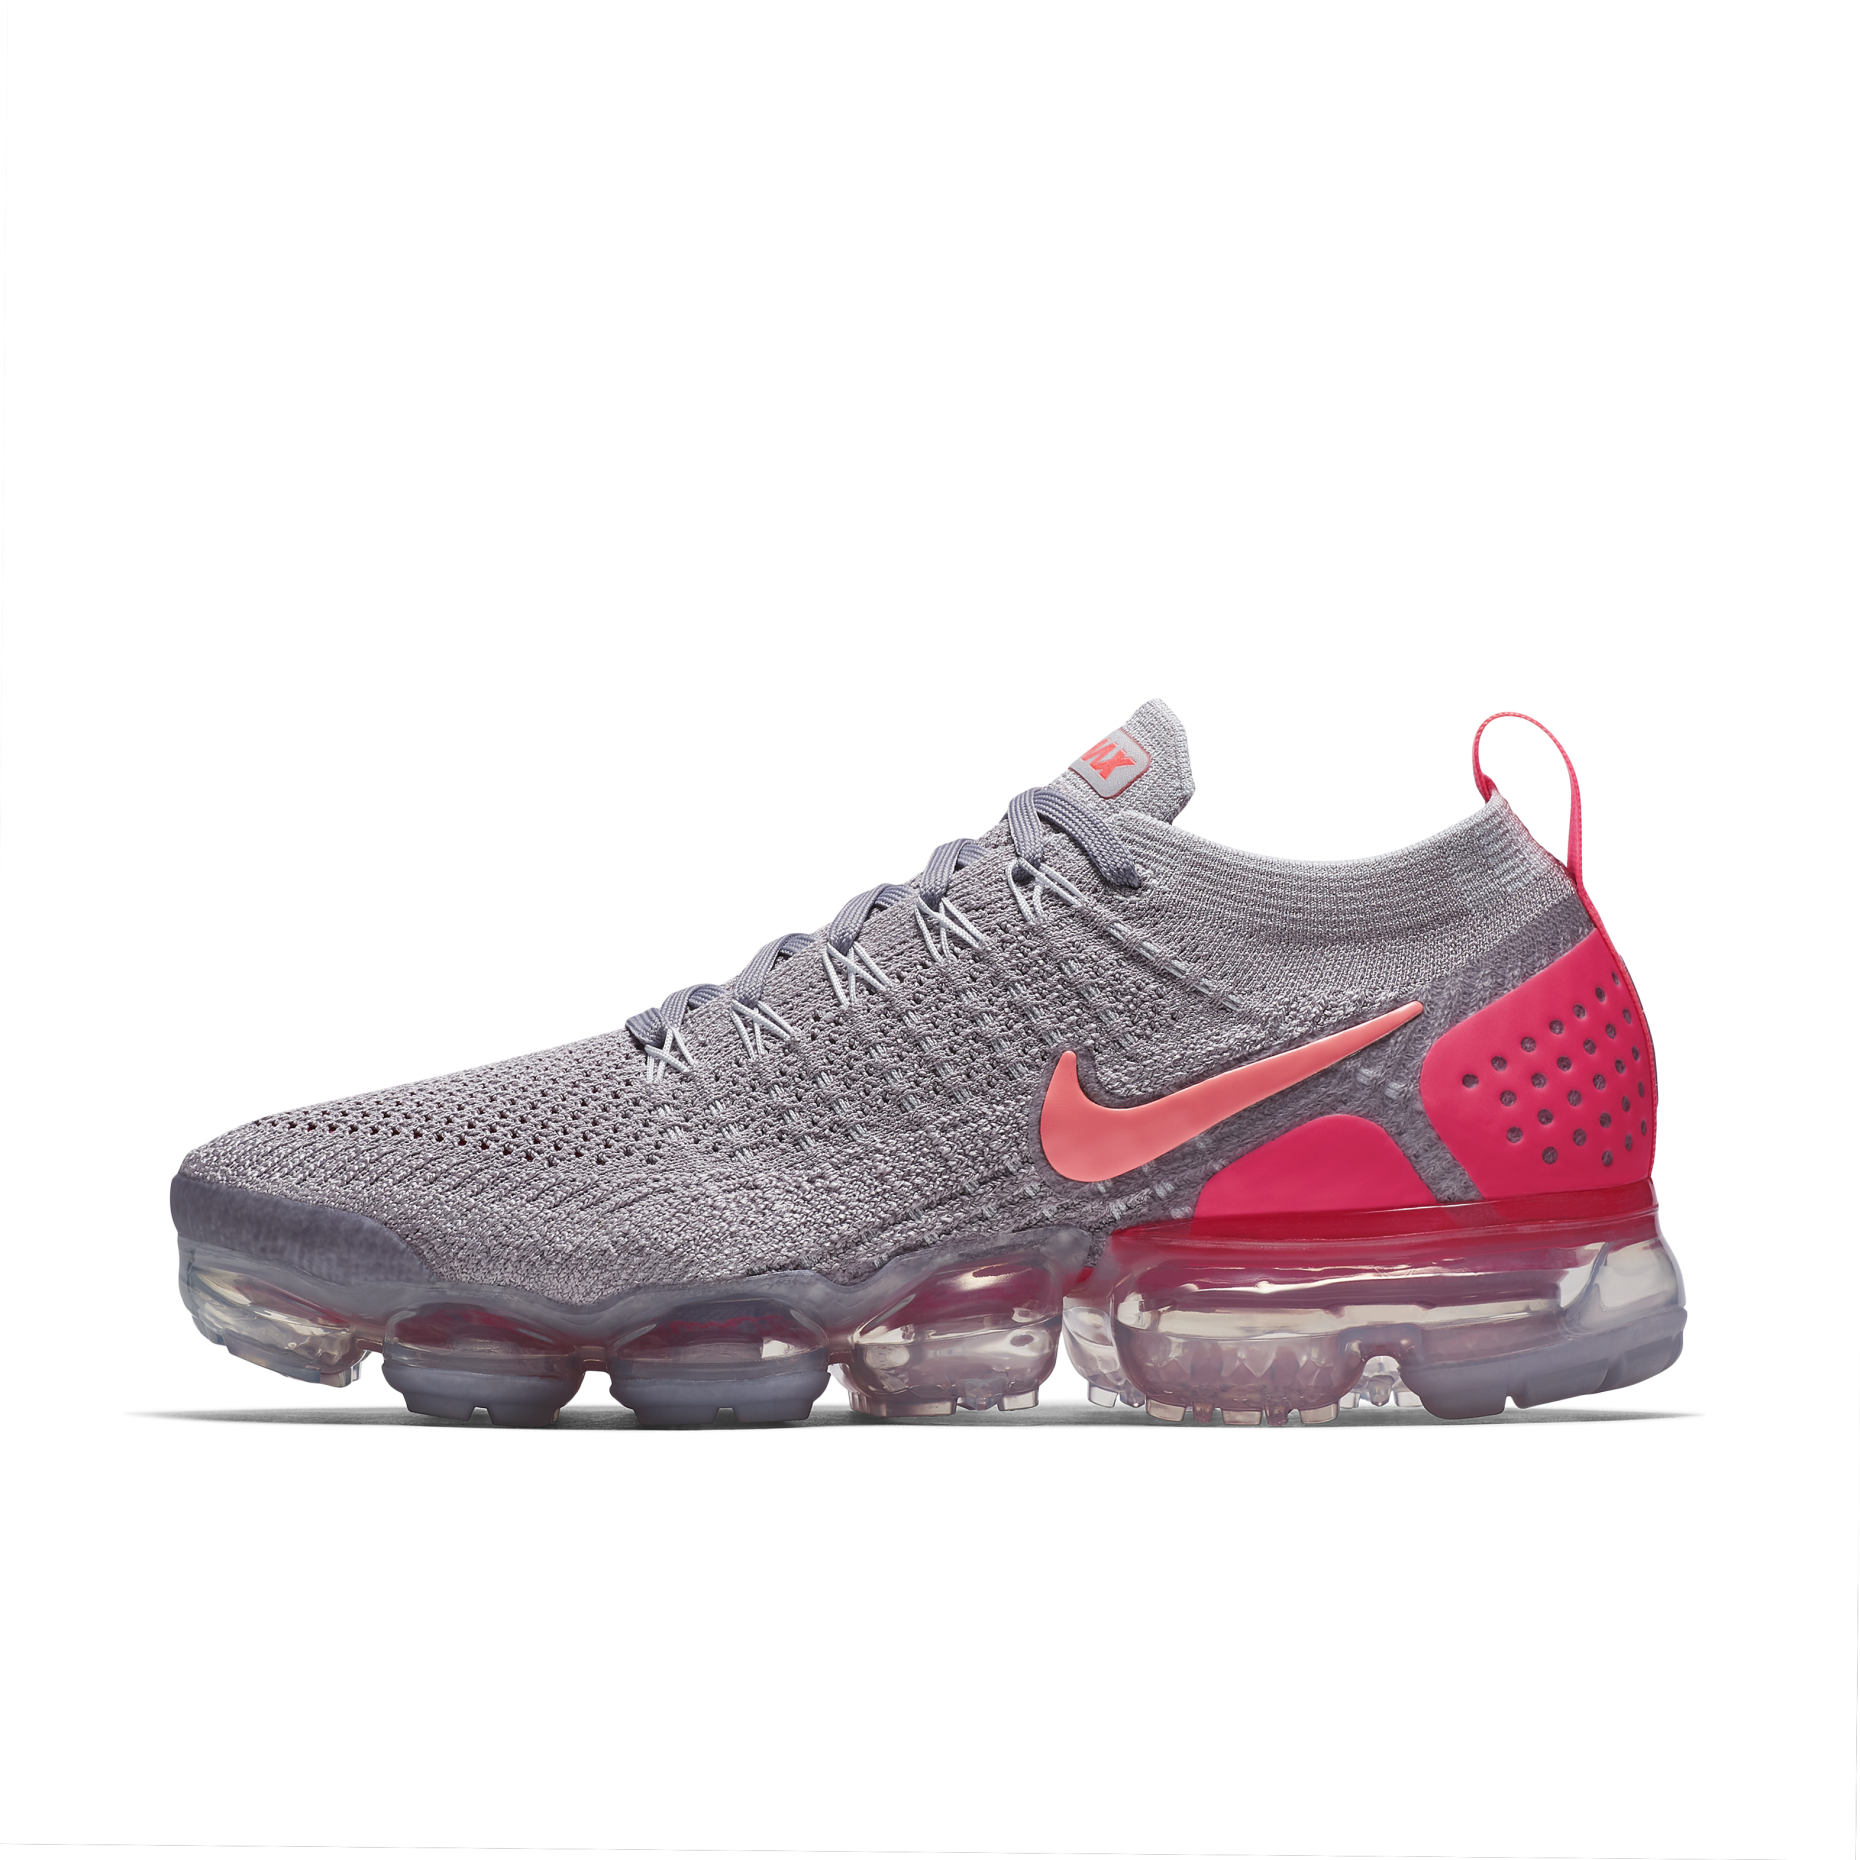 finest selection 866d6 631ed Nike Wmns Air VaporMax Flyknit 2 Atmosphere Grey Total Crimson 942843-005 1.png v 1535026582